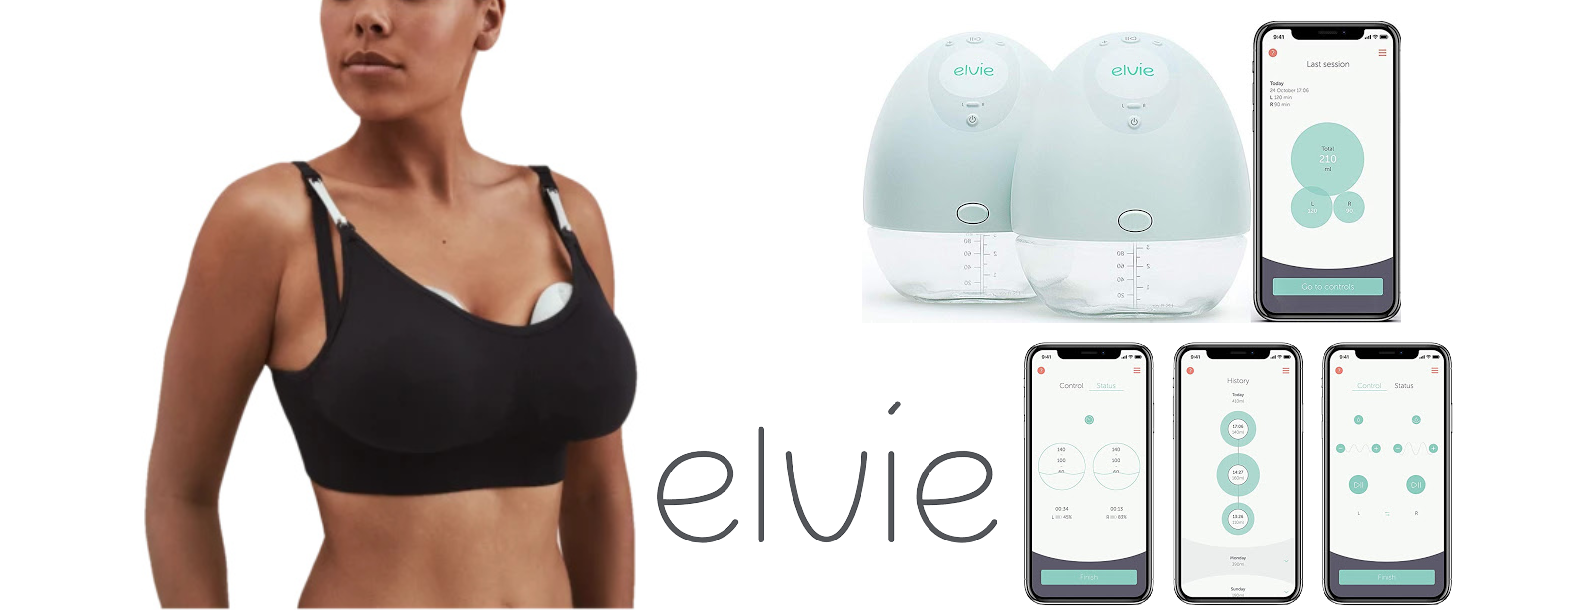 Elvie vs Youa The INs review 1